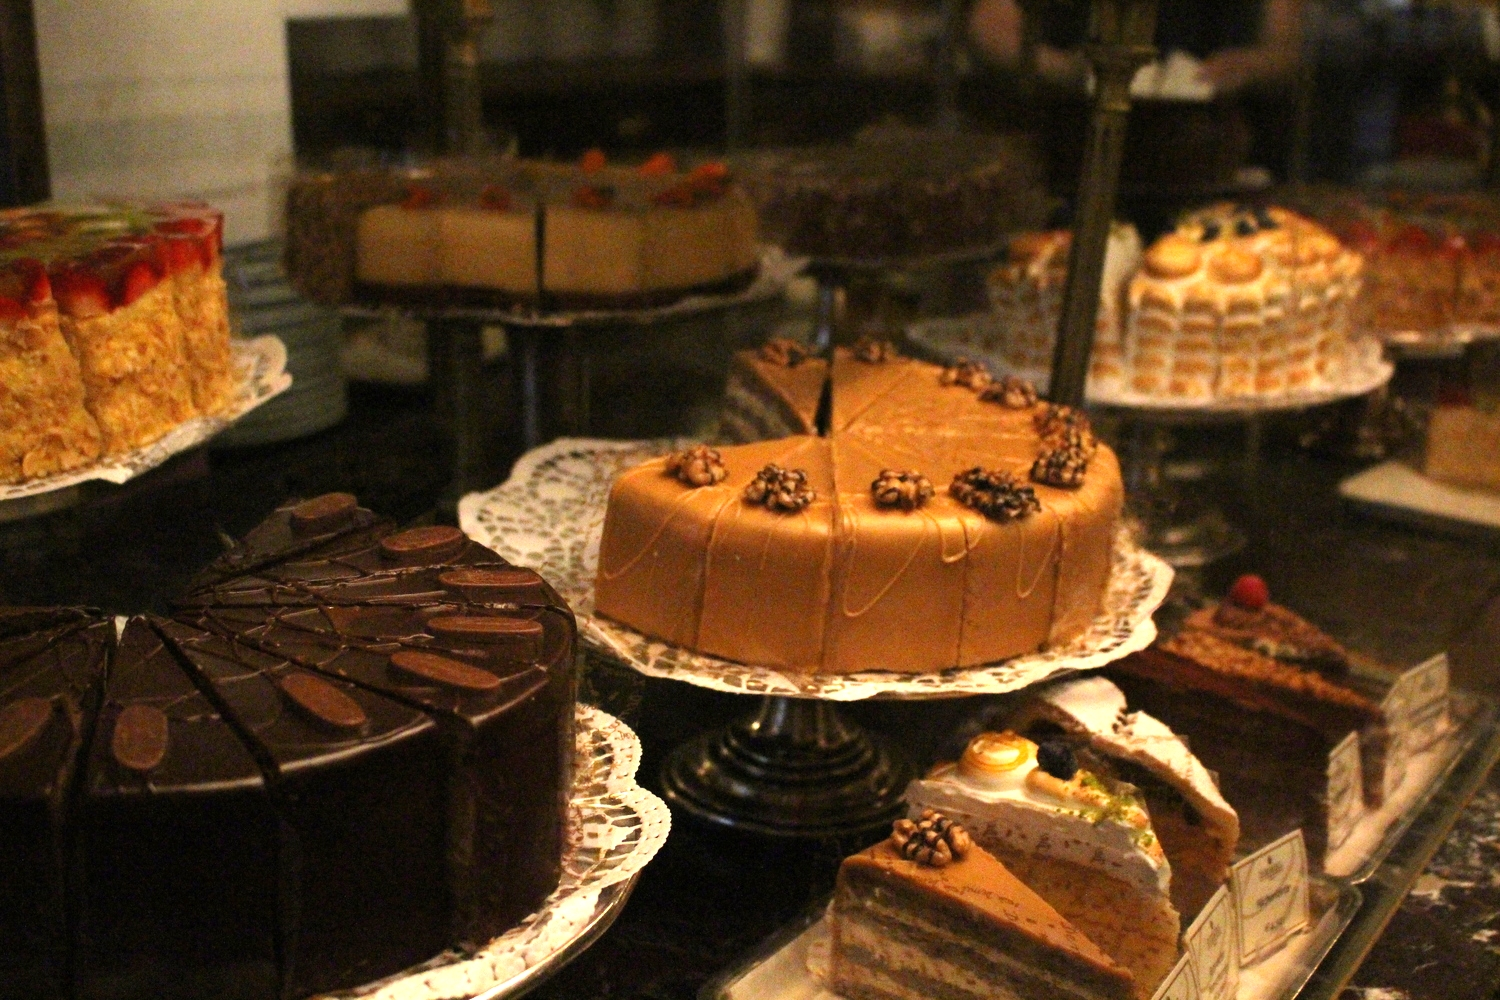 Demel cakes (photo: Anne Banas)